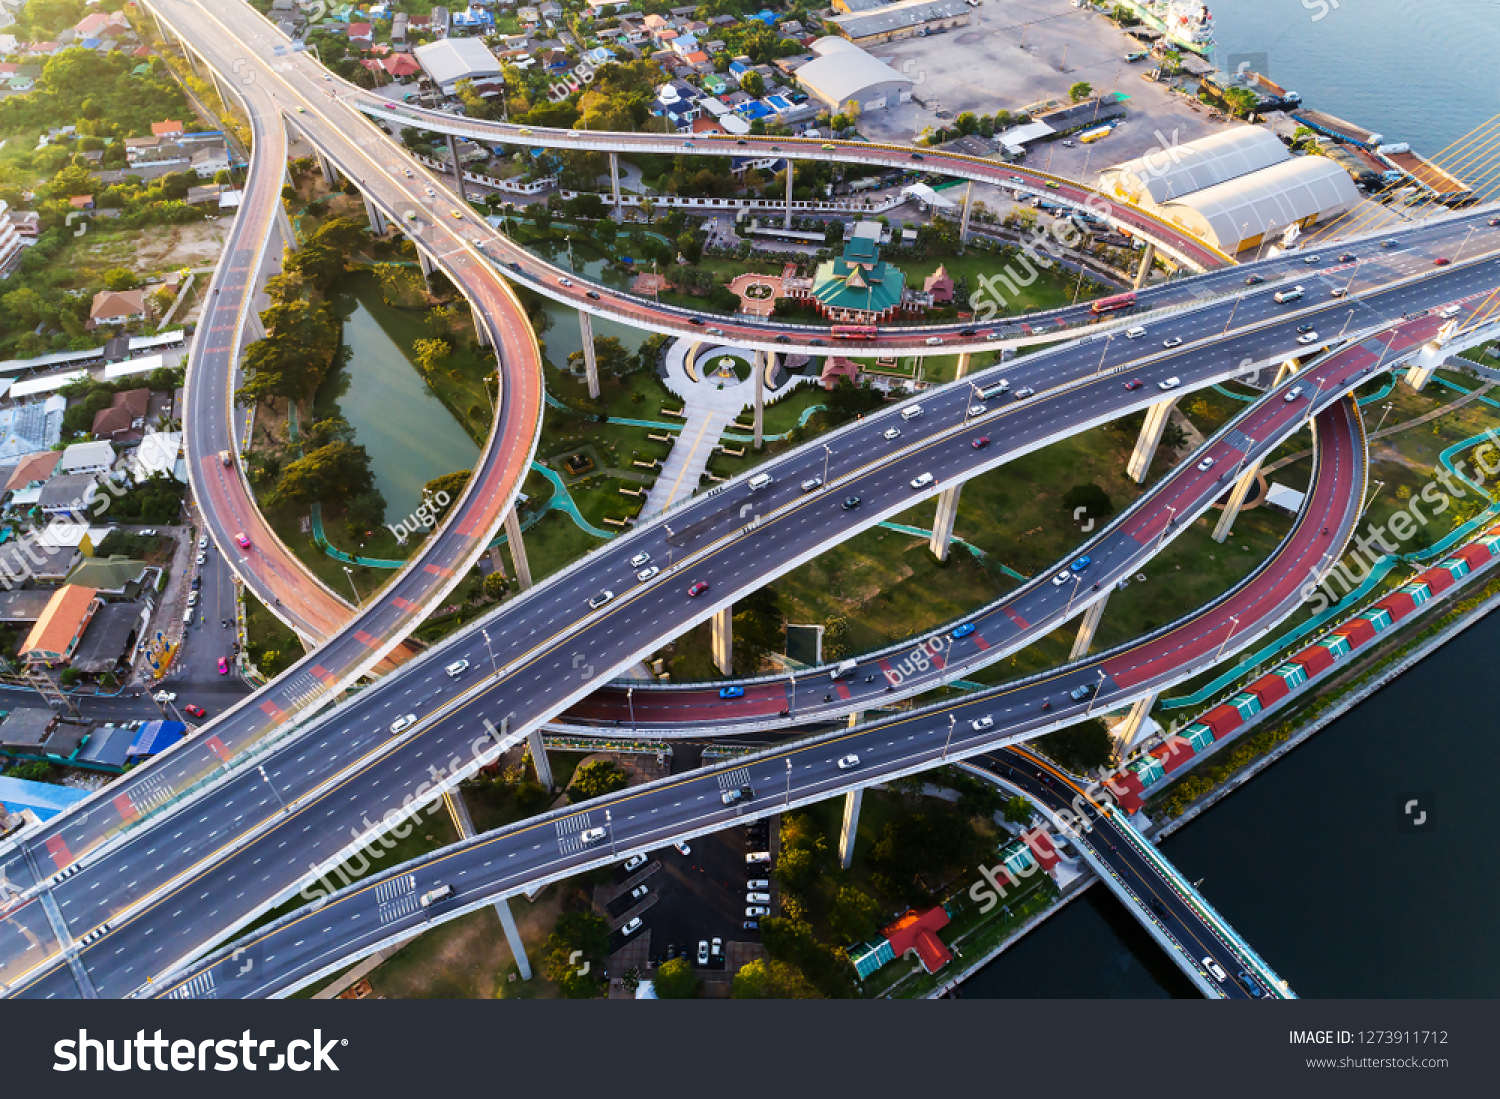 Aerial view shot or intersection of highway road with cityscape background for transportation or traffic. #1273911712